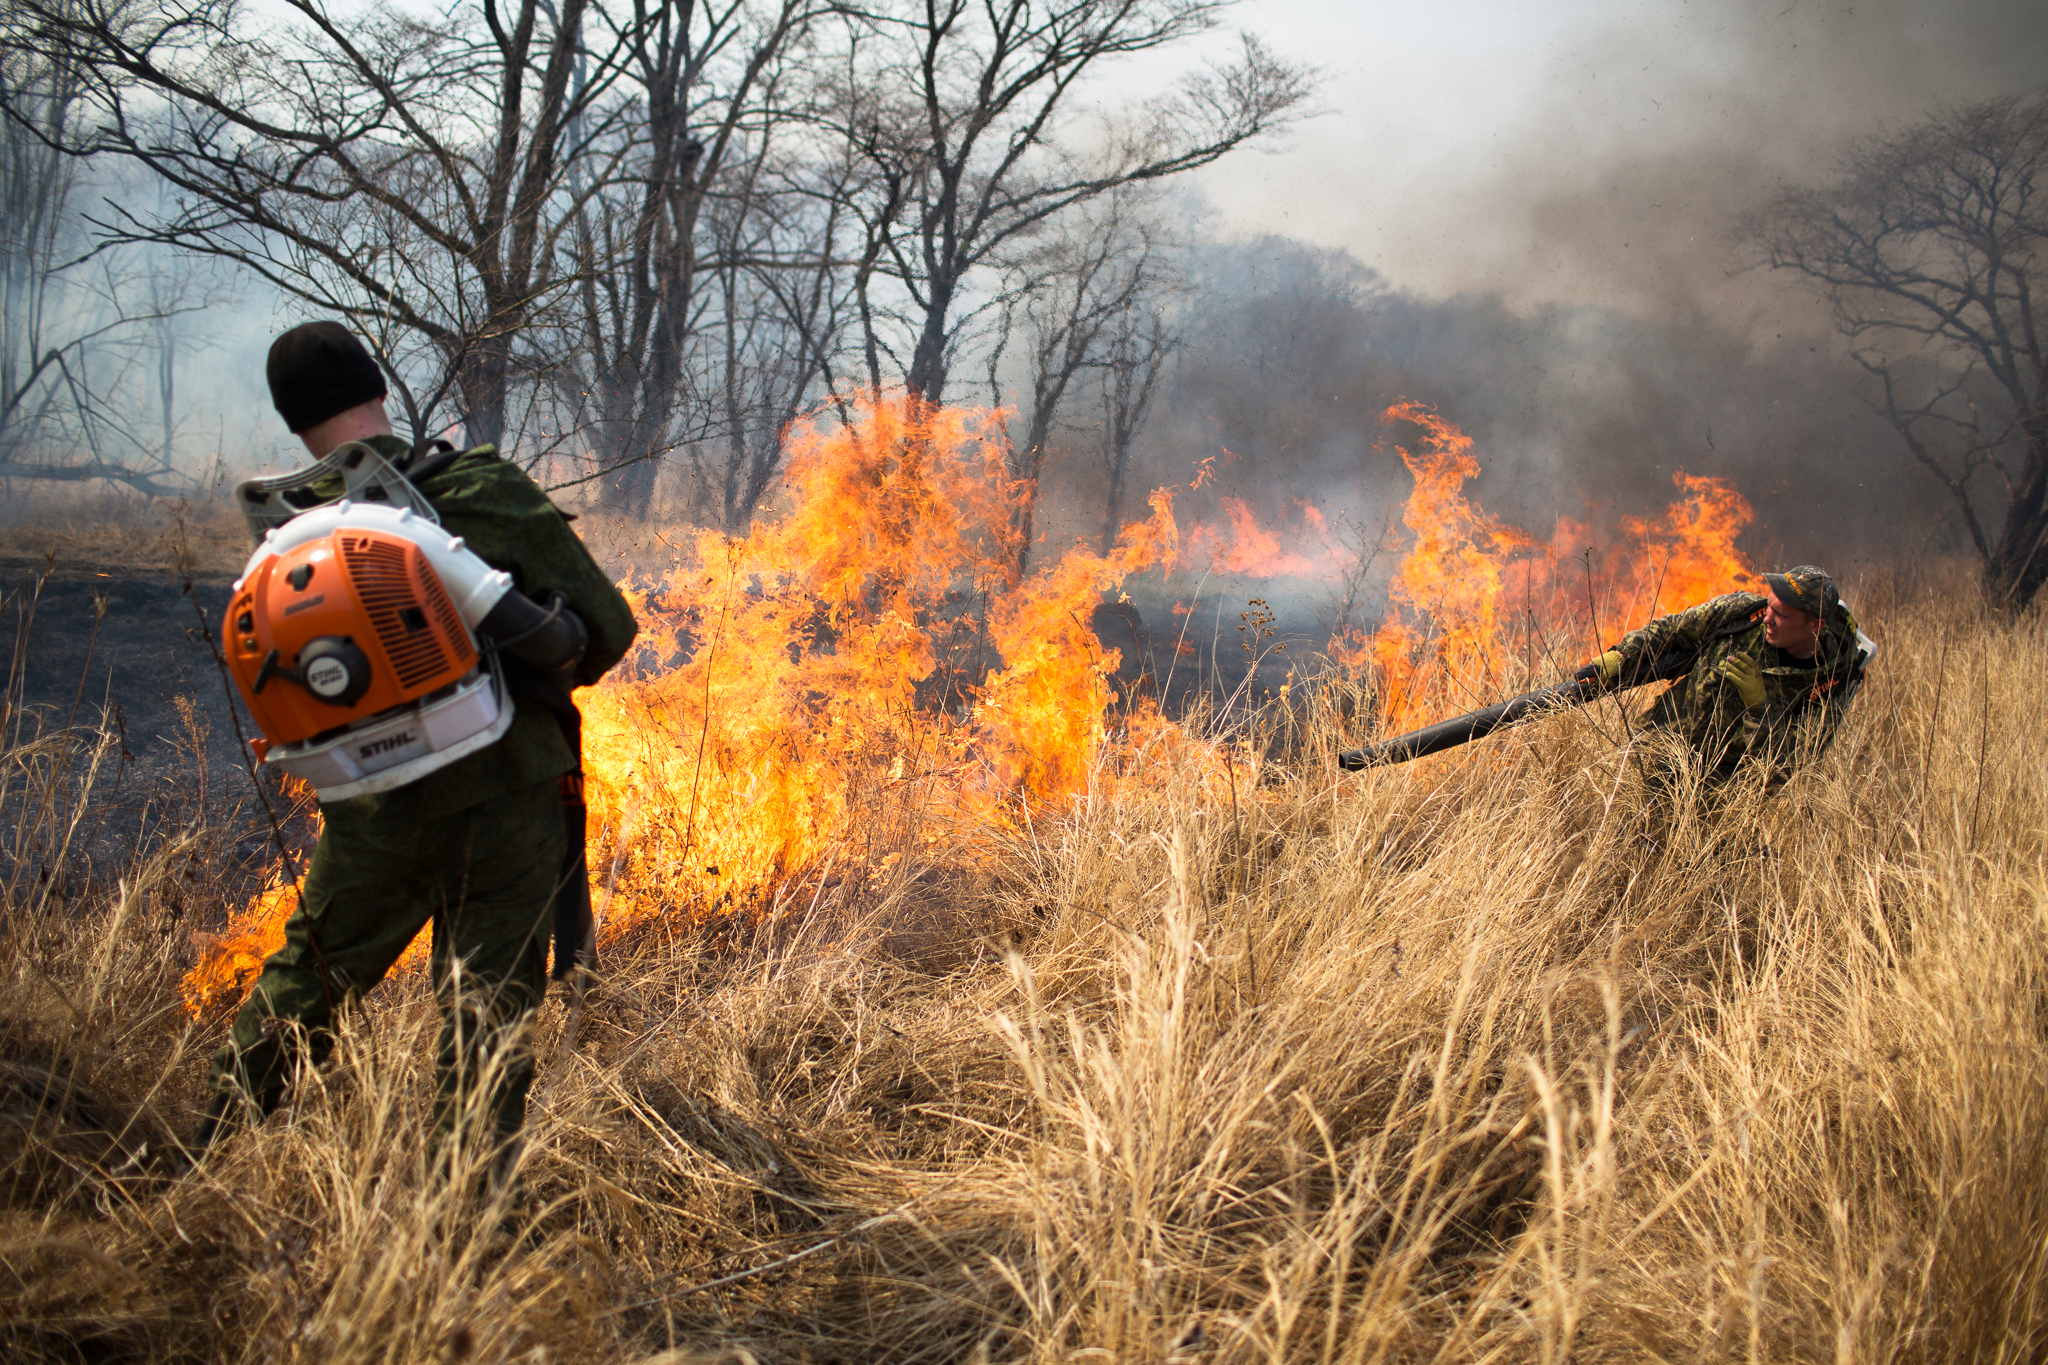 Fire is one of the biggest threats to Amur leopards. Here, park rangers are fighting back with the only tool they have—a leaf blower aimed at the base of the fire.